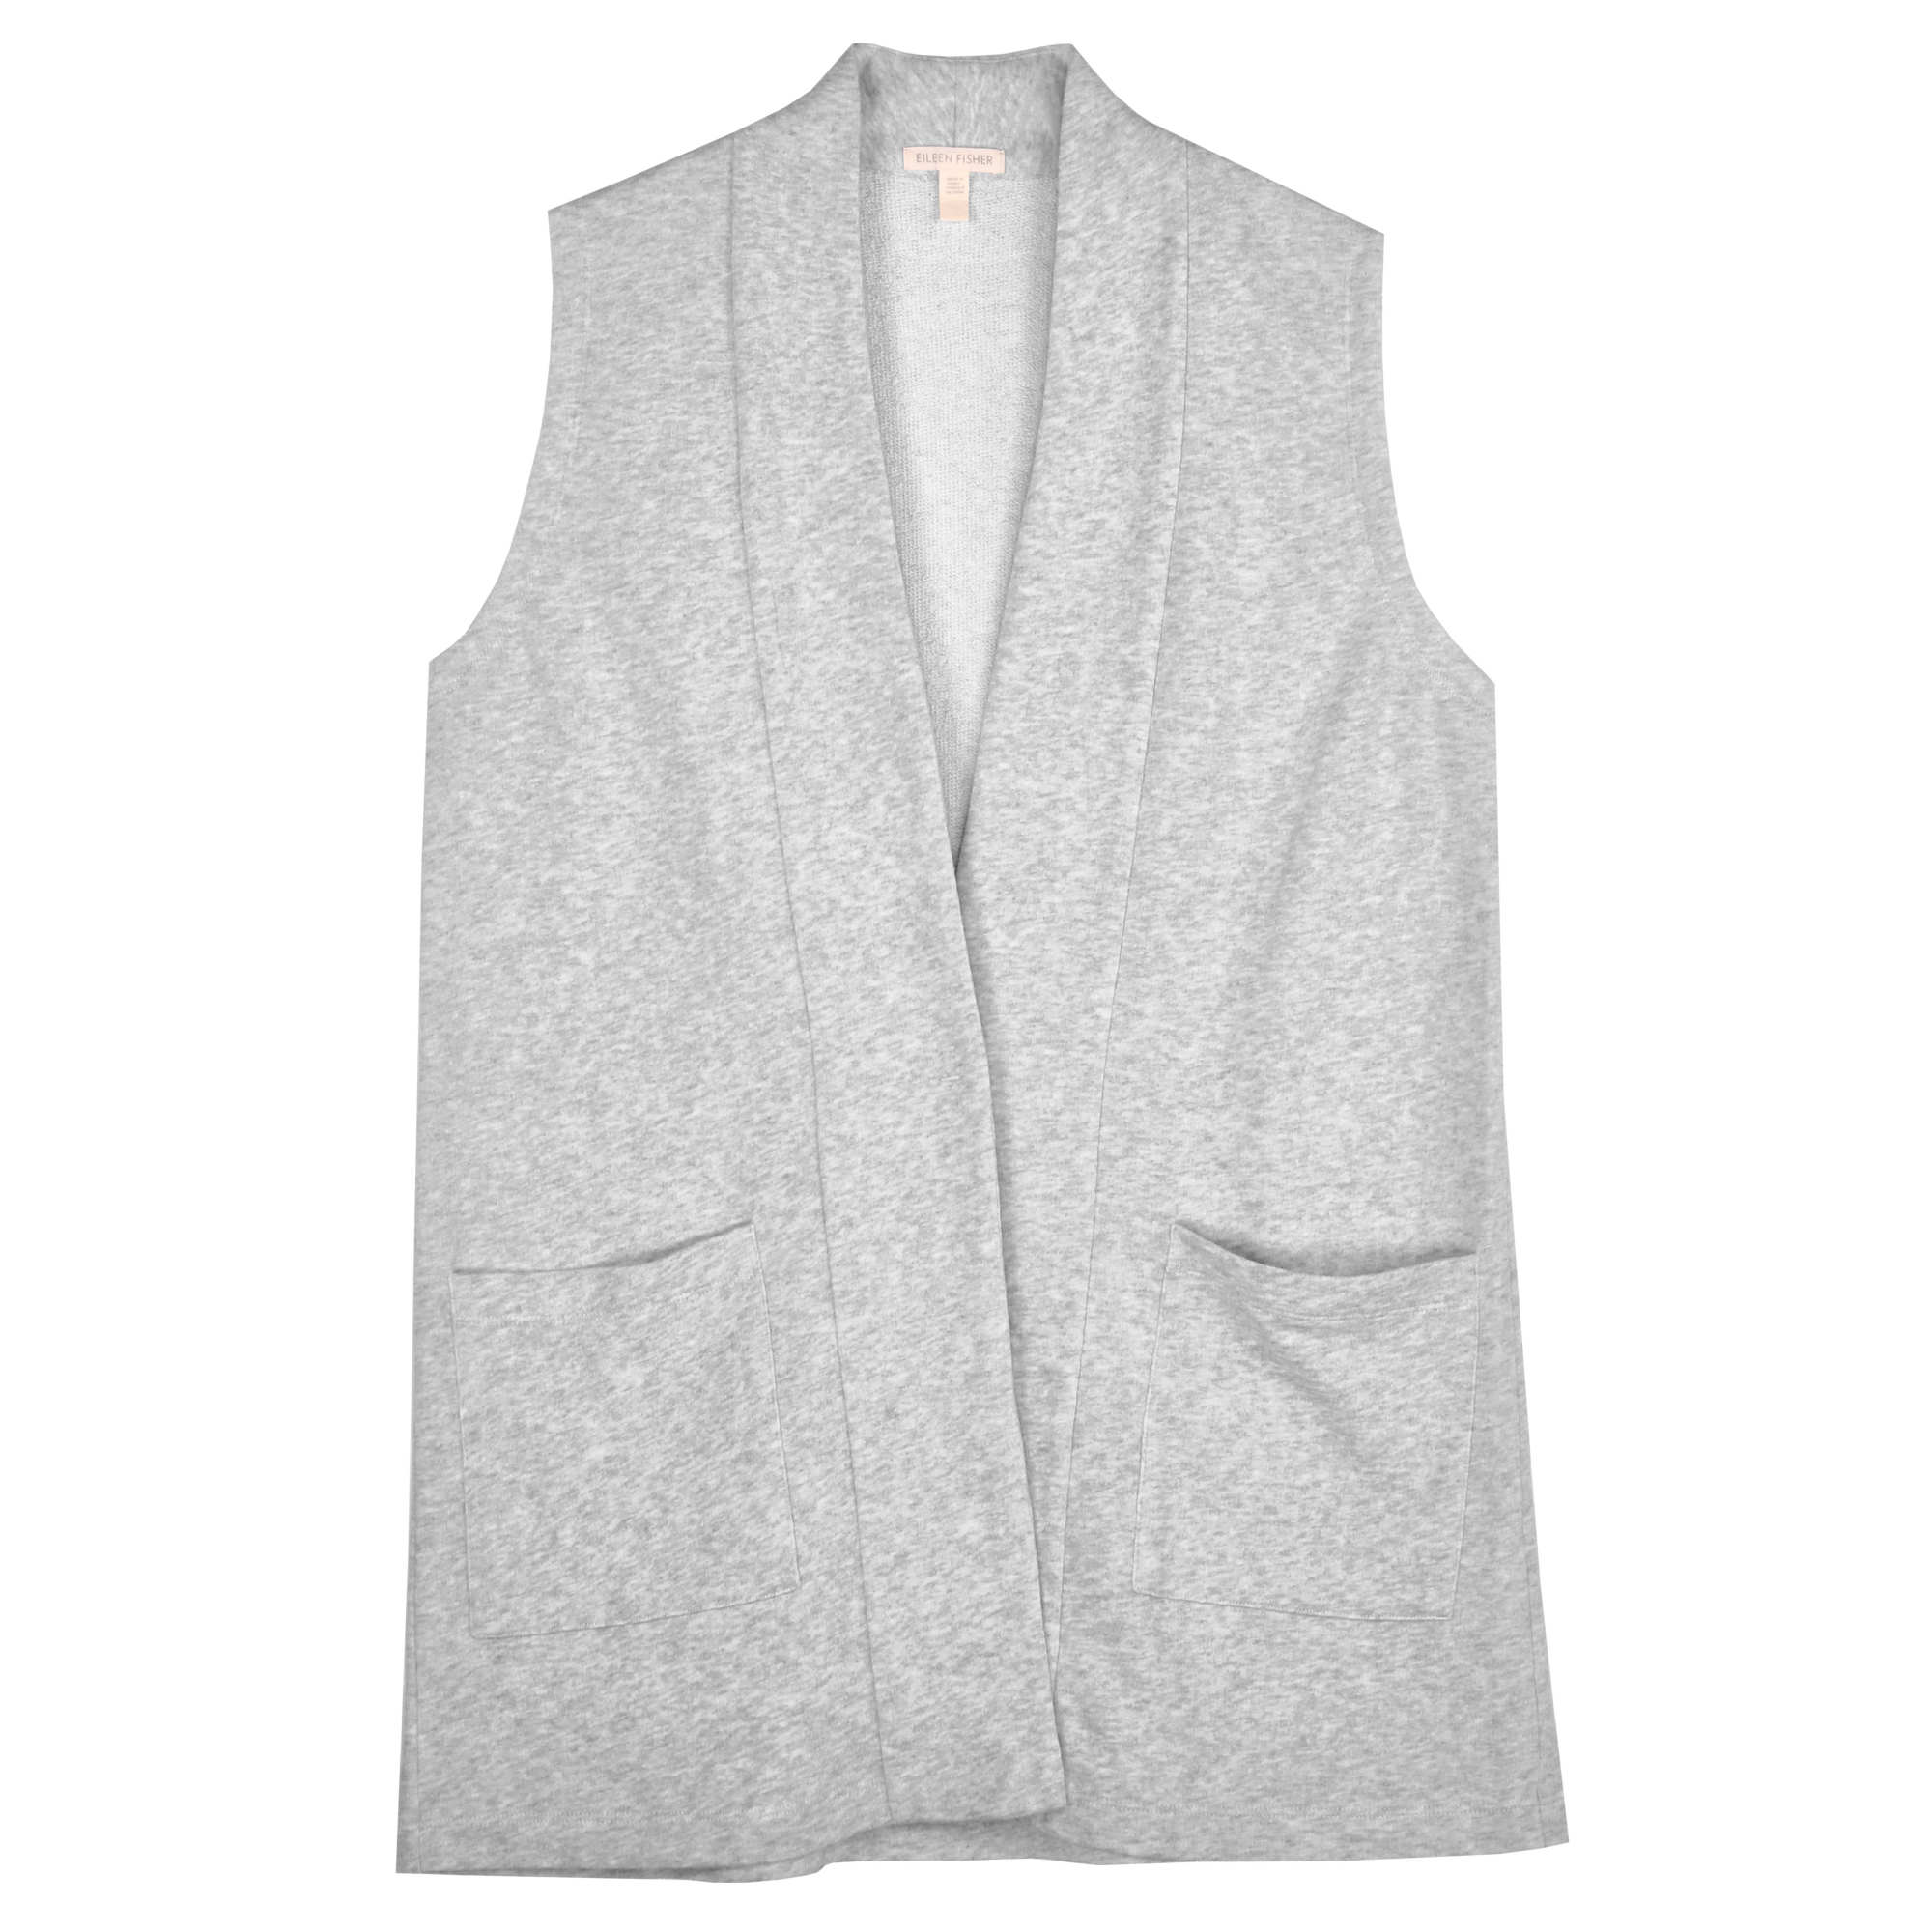 Twisted Loop Organic Cotton Terry Vest